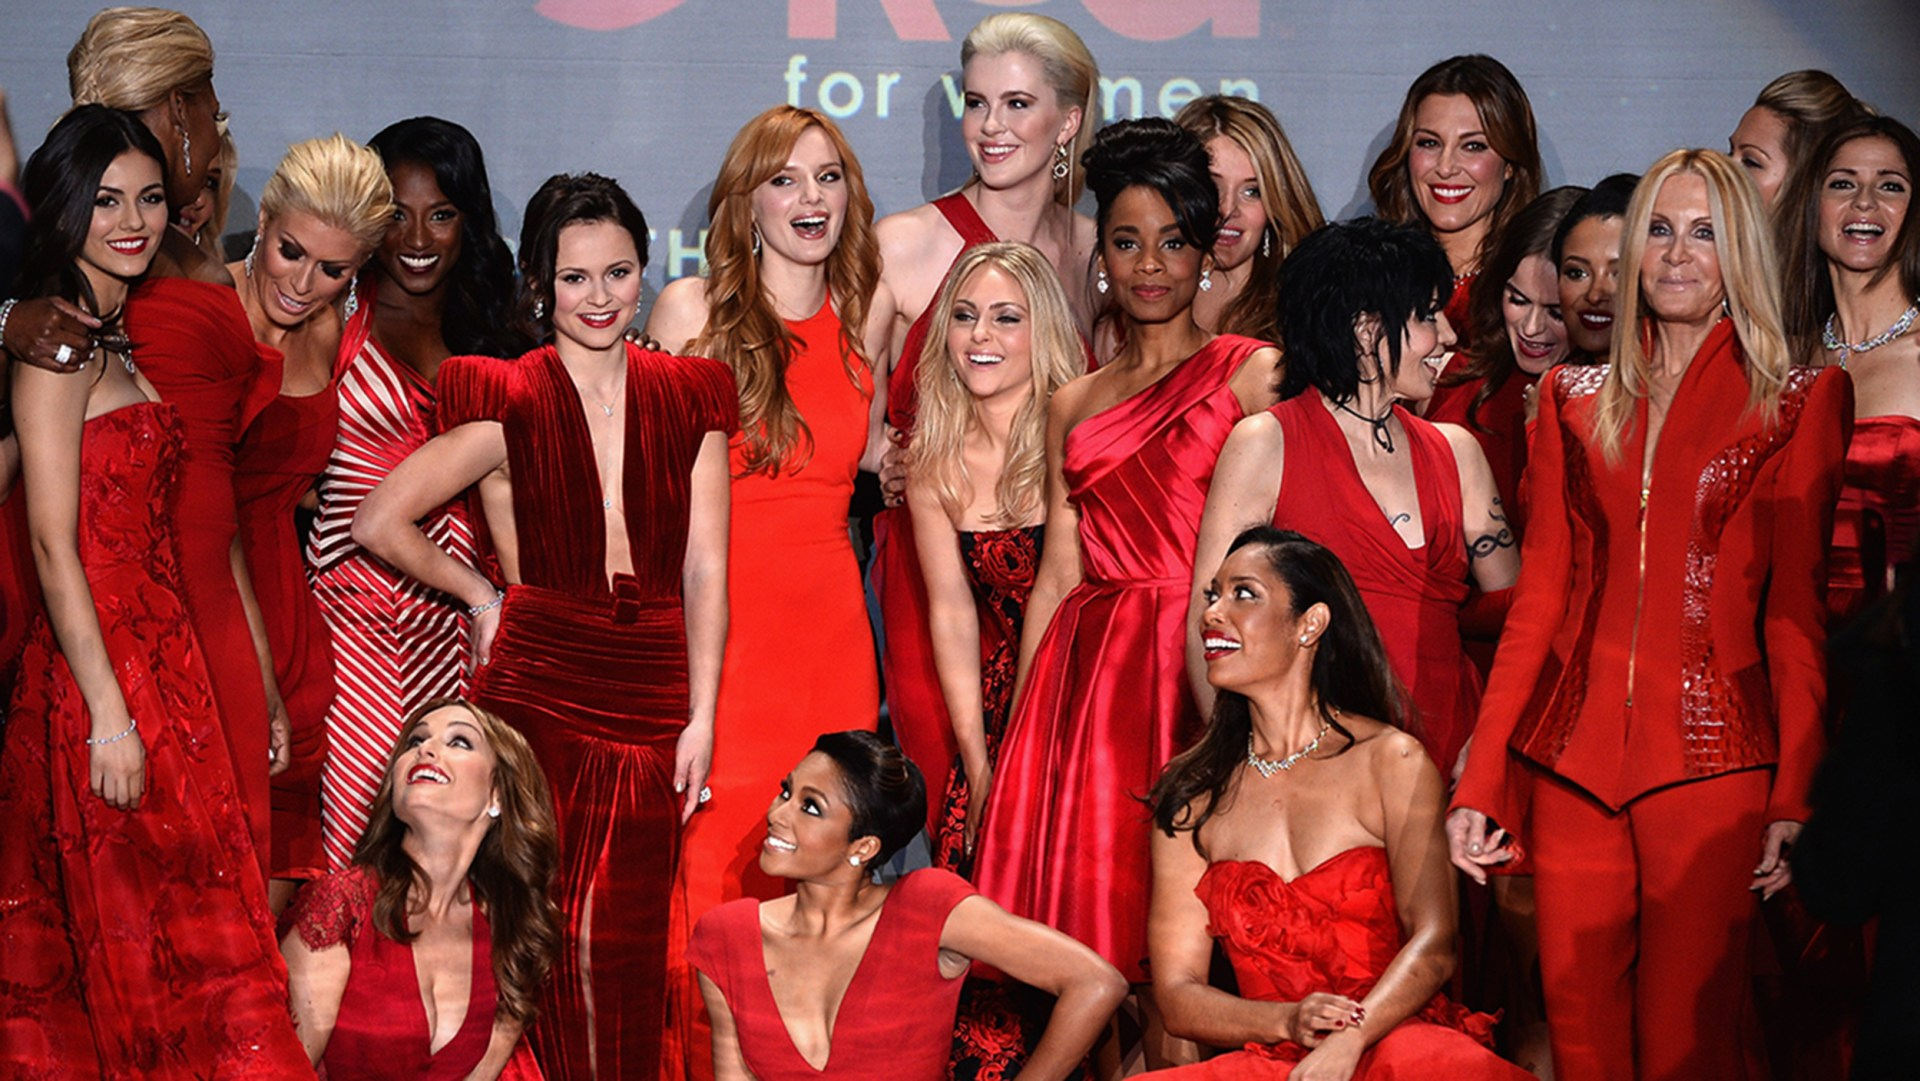 Image: Go Red For Women - The Heart Truth Red Dress Collection 2014 Show Made Possible By Macy's And SUBWAY Restaurants - Runway